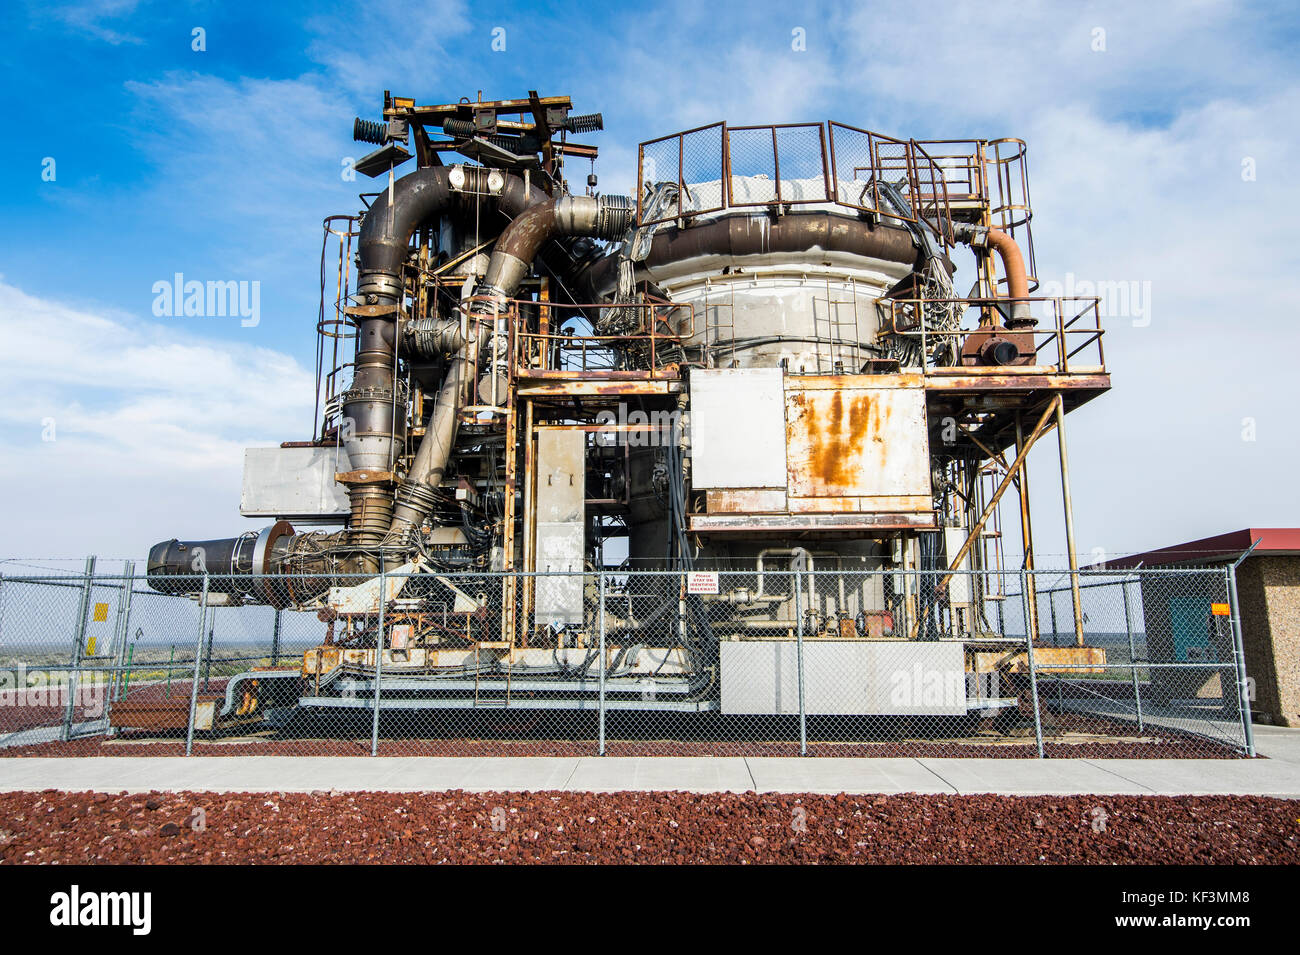 Experimental Breeder Reactor I (EBR-I)  the world's first electricity-generating nuclear power plant ,Arco, - Stock Image